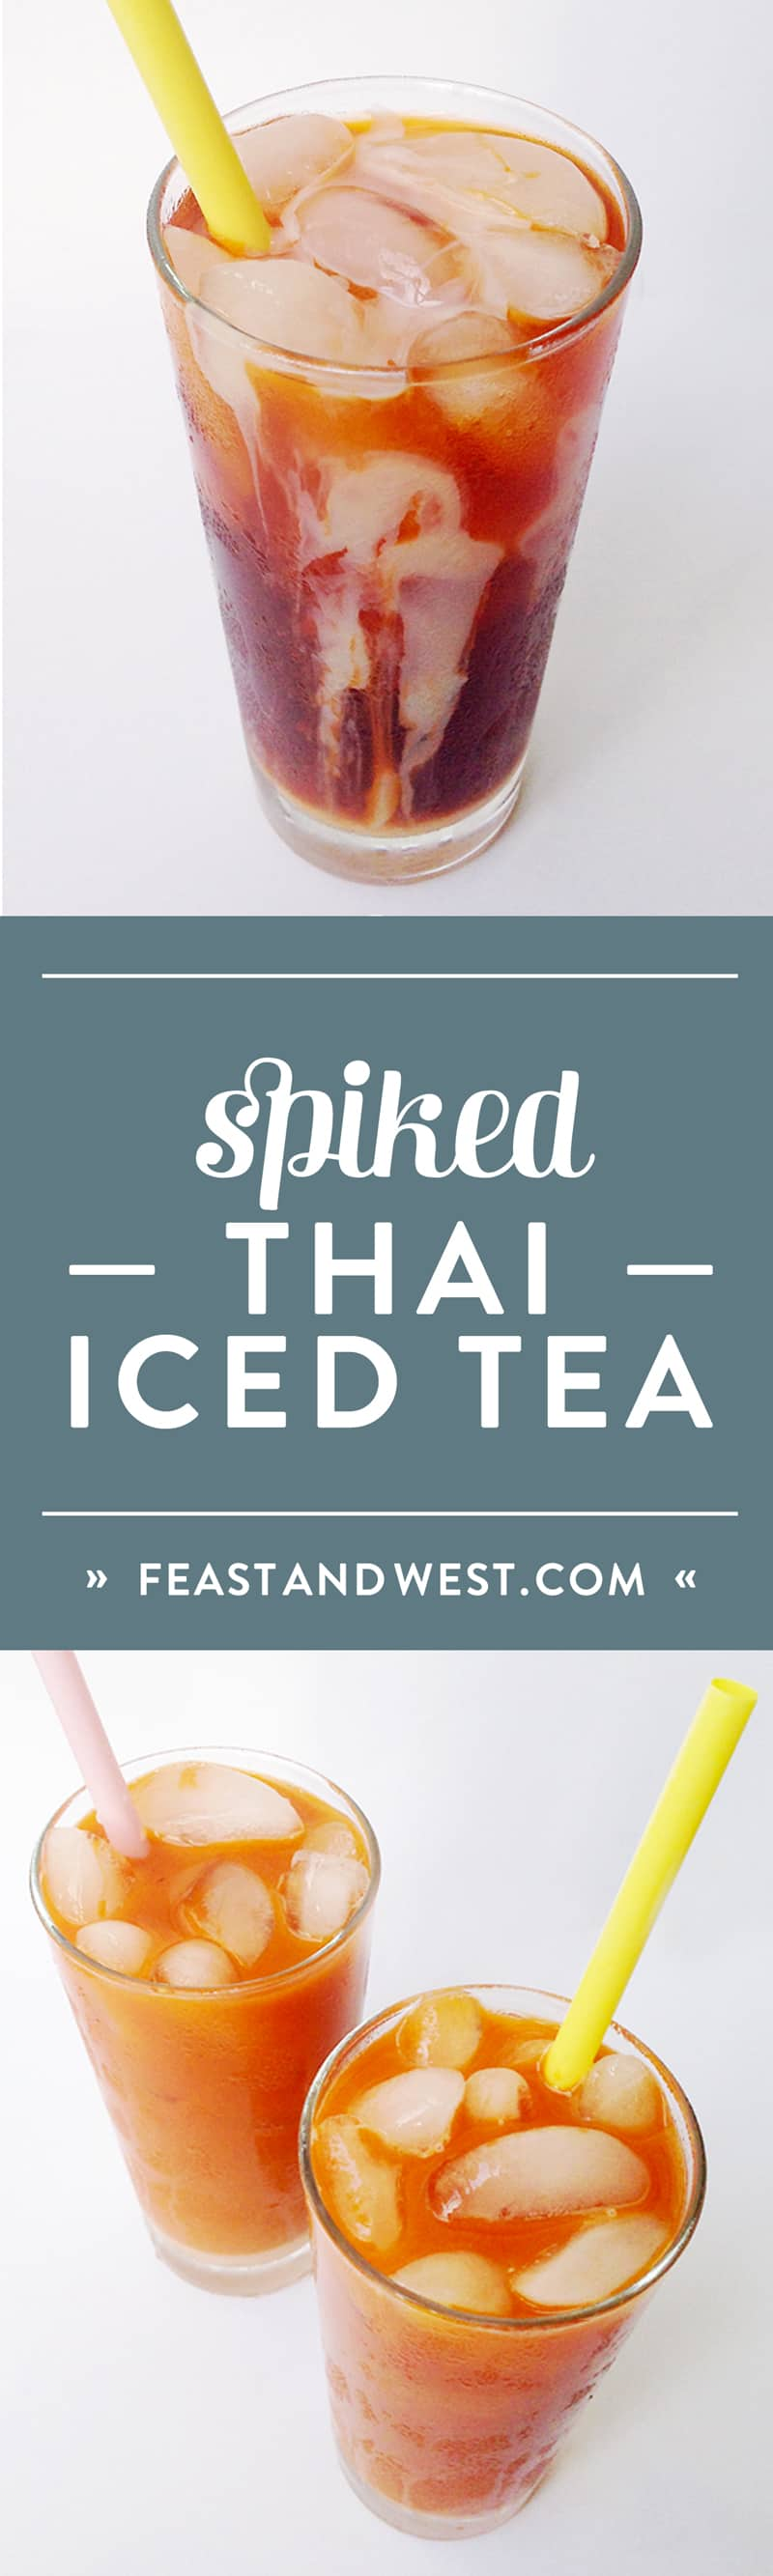 Cool off with an ice-cold Spiked Thai Iced Tea. With a hint of vanilla and a spot of rum or vodka, this sweet, silky beverage is a refreshingindulgence reminiscentof my favorite Thai restaurant treat.(via feastandwest.com)